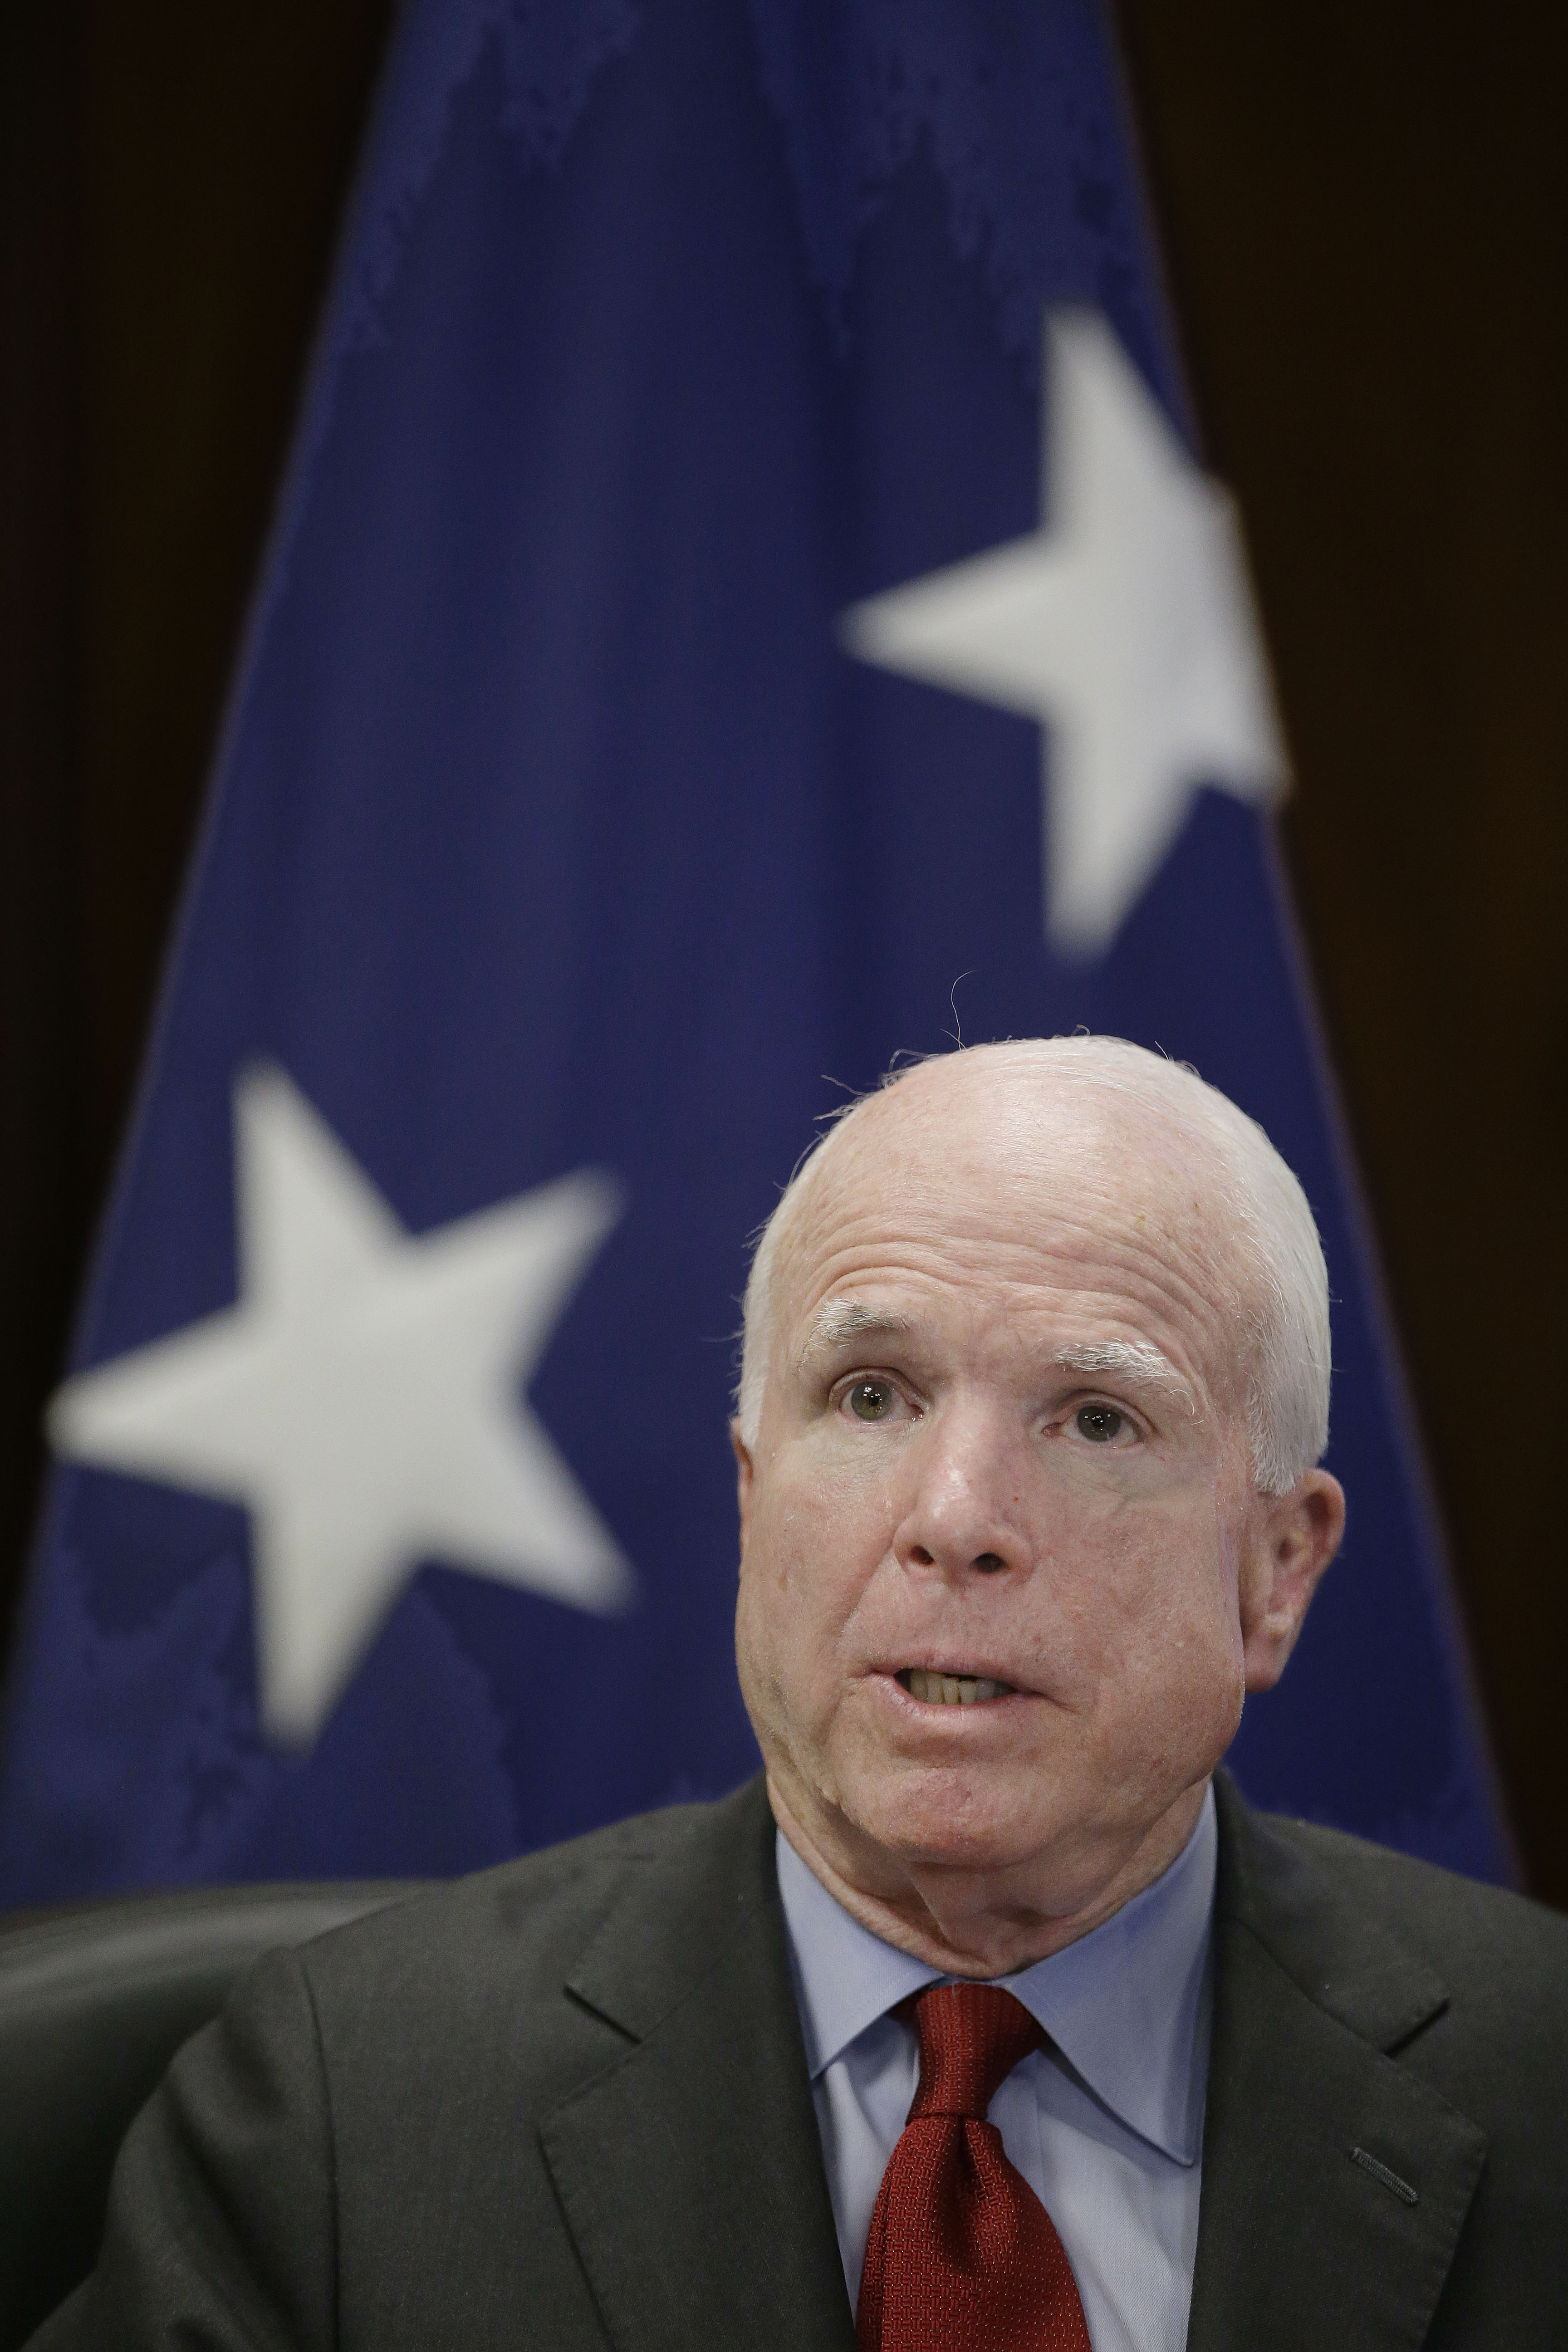 U.S. Senator John McCain, R-Ariz., responds to a reporter's question on Iraq during a media availability after he delivered an evening lecture at the U.S. Naval War College Thursday, June 12, 2014 in Newport, RI.